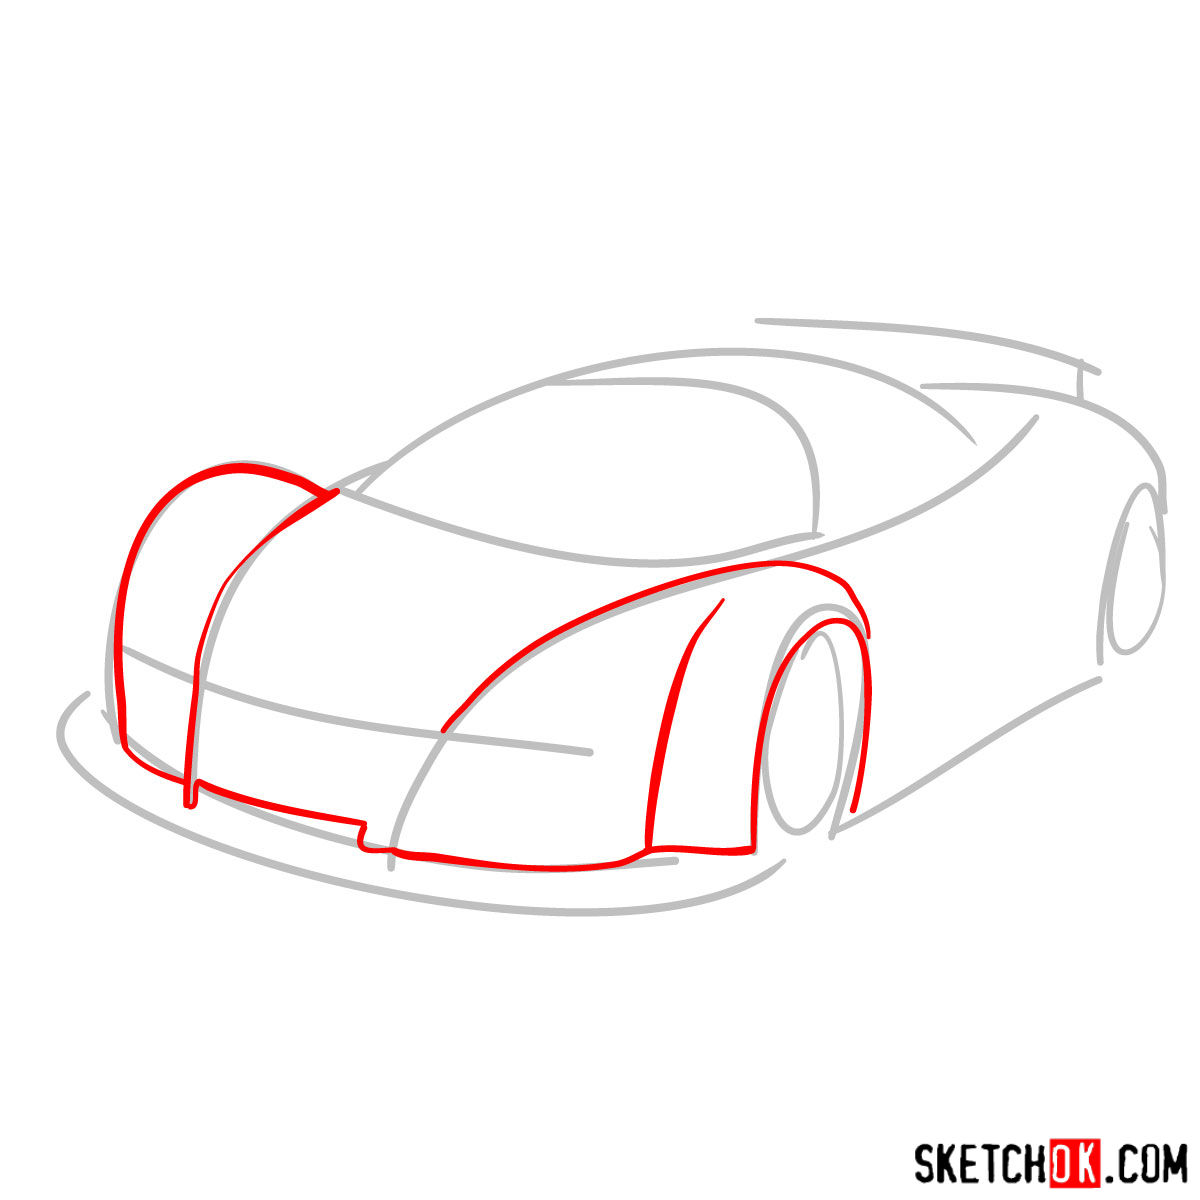 How to draw Gumpert Apolo Sport 2005 - step 02